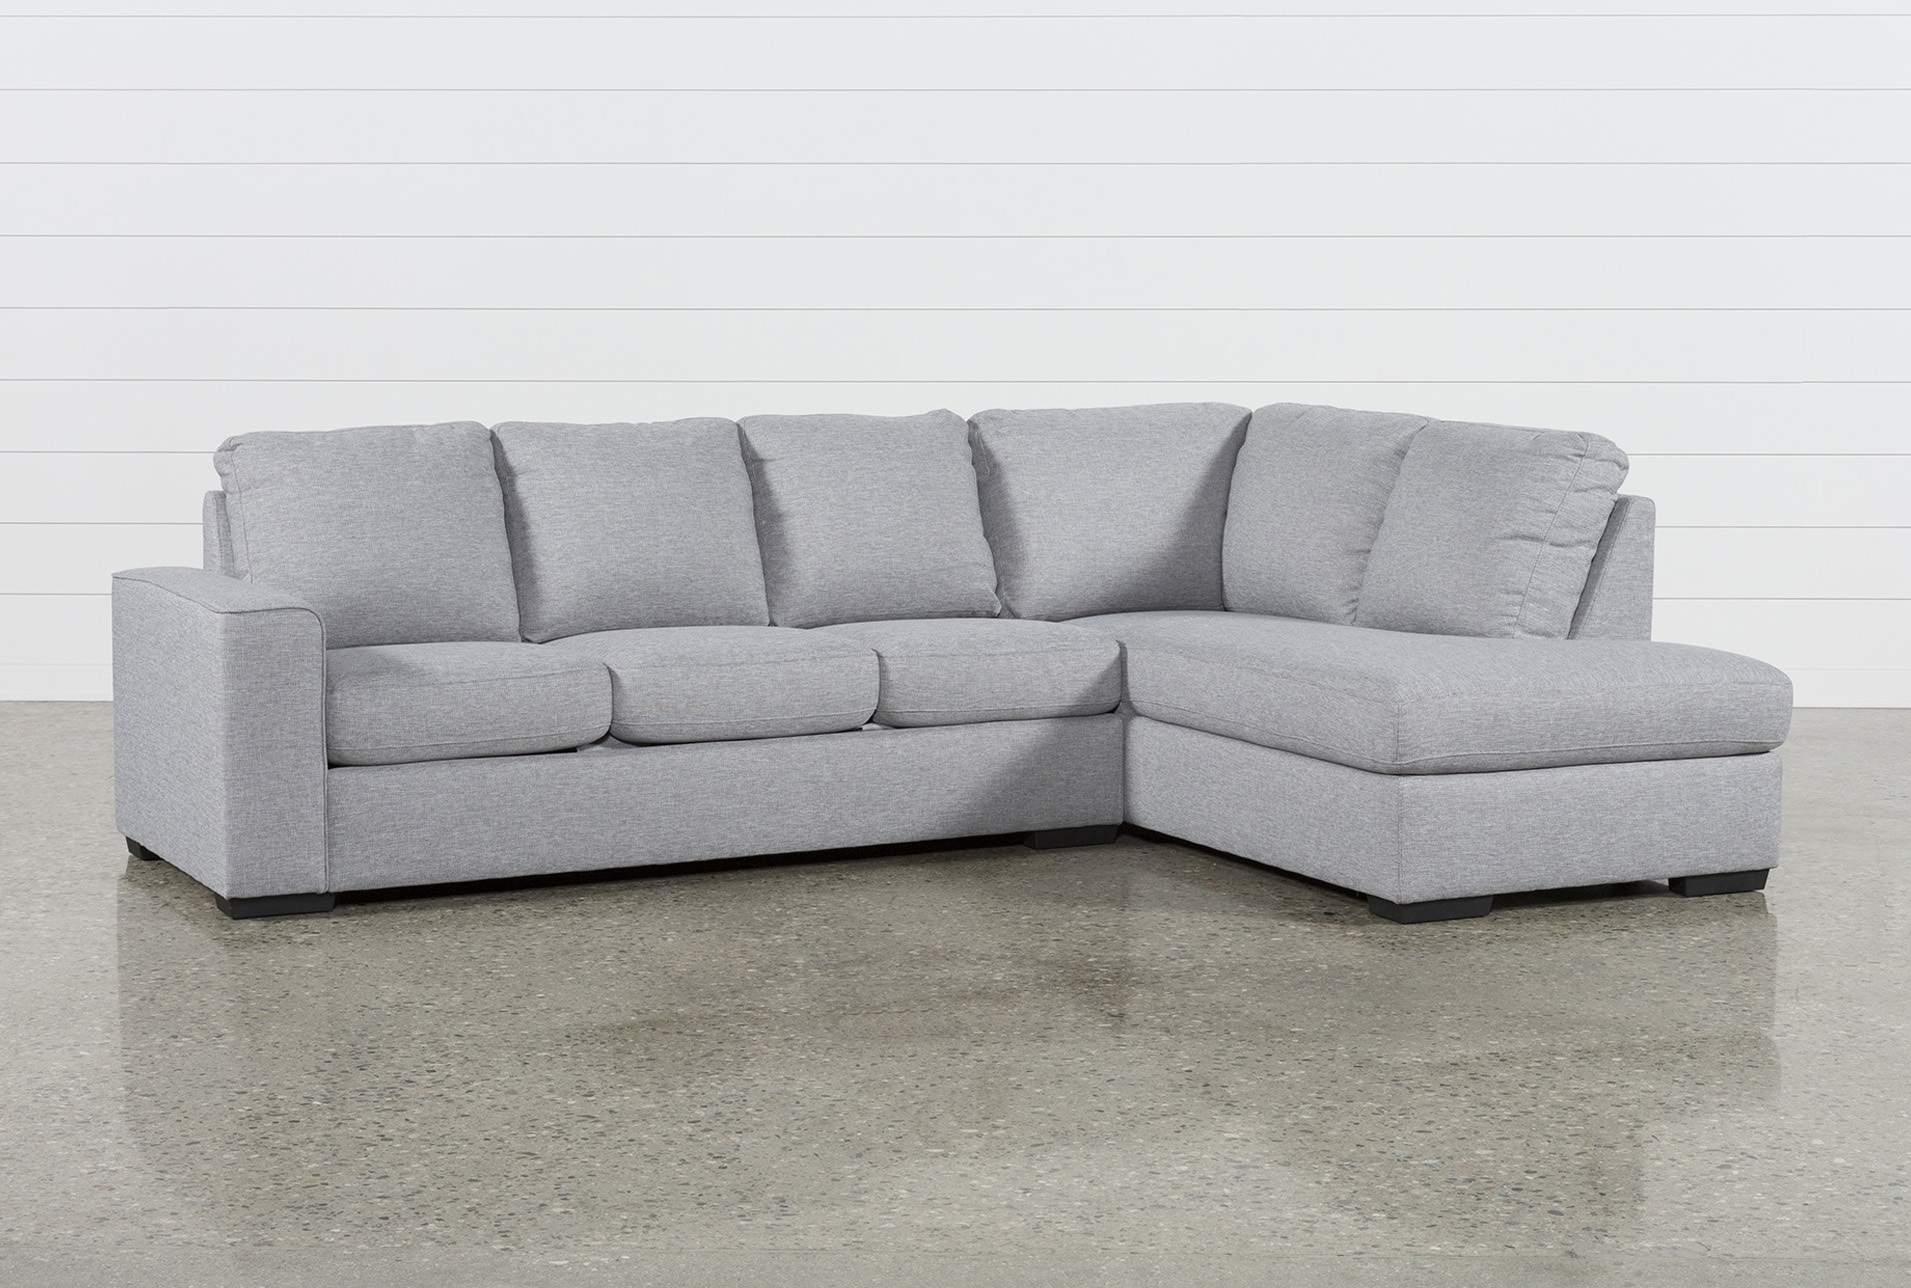 Lucy Grey 2 Piece Sectional W/raf Chaise | Products | Pinterest | Gray Regarding Lucy Dark Grey 2 Piece Sleeper Sectionals With Raf Chaise (View 2 of 25)